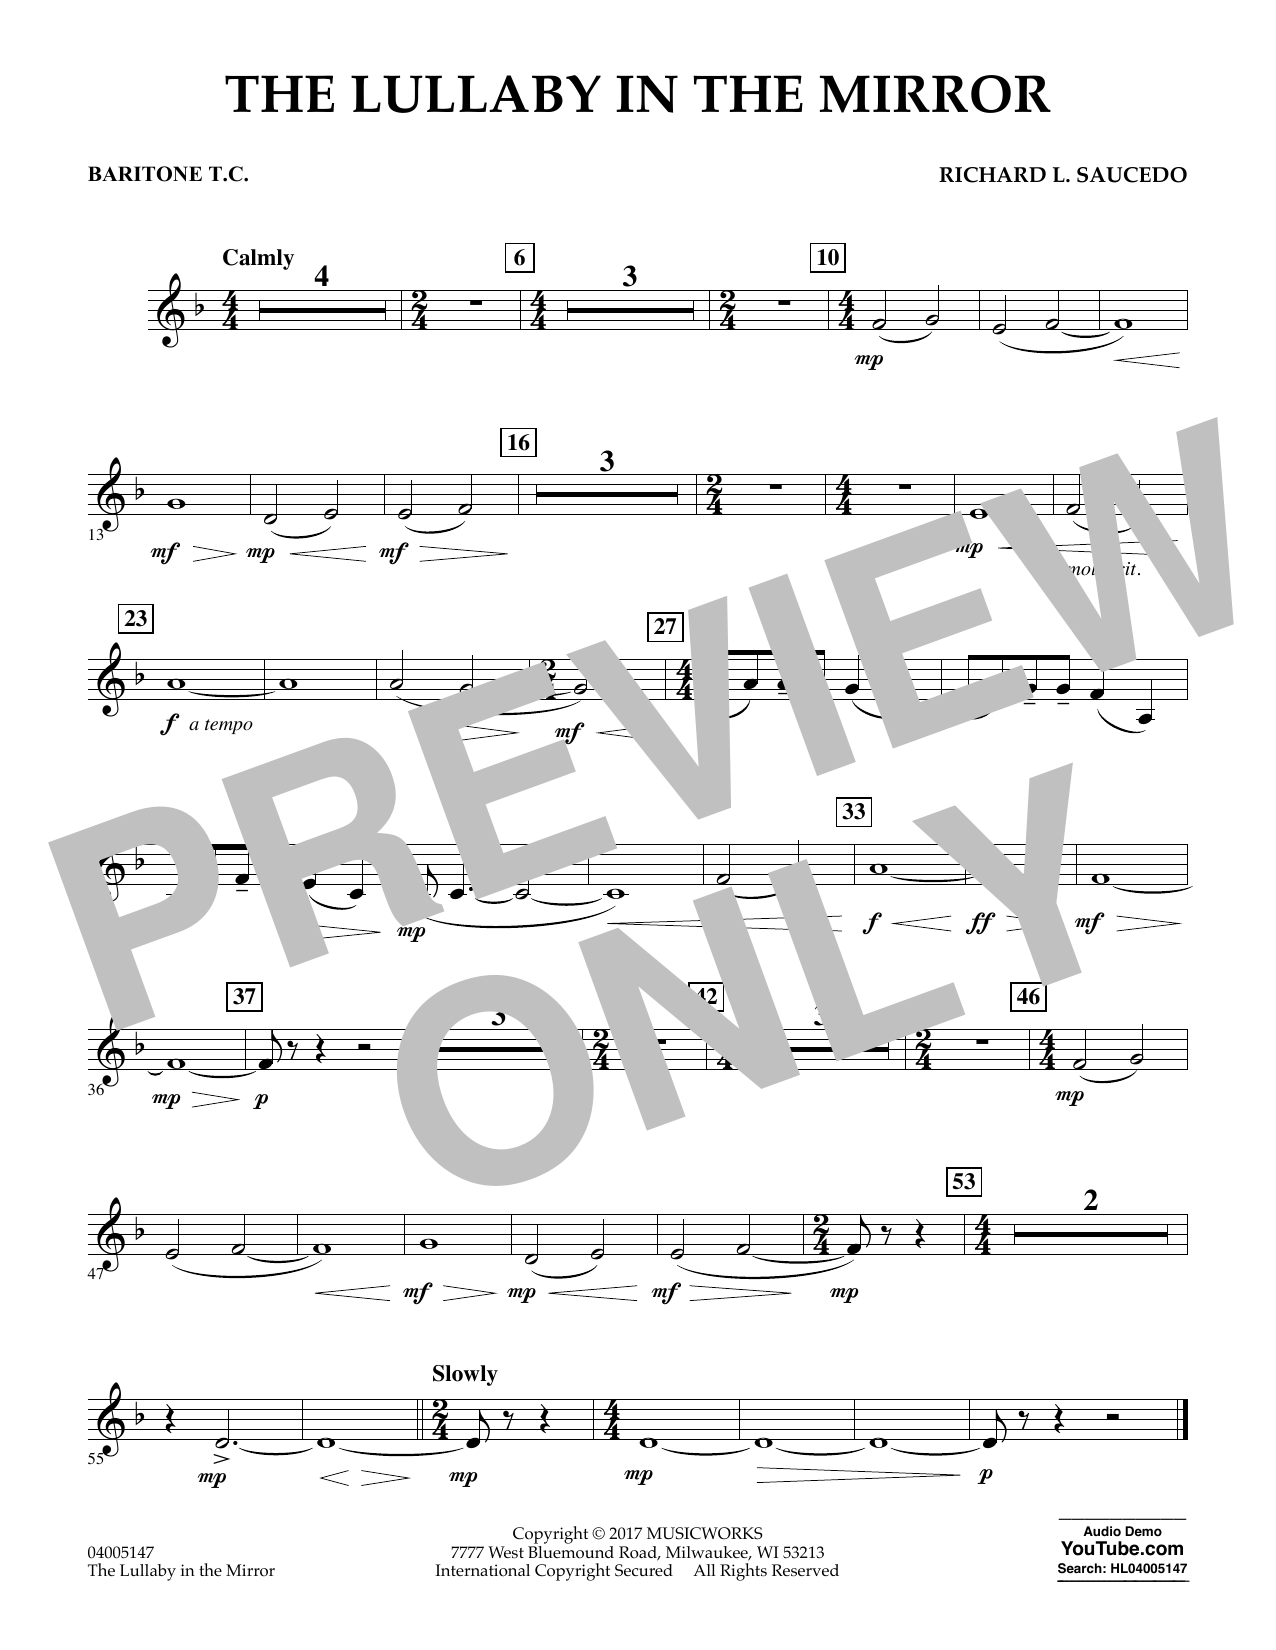 The Lullaby in the Mirror - Baritone T.C. Sheet Music